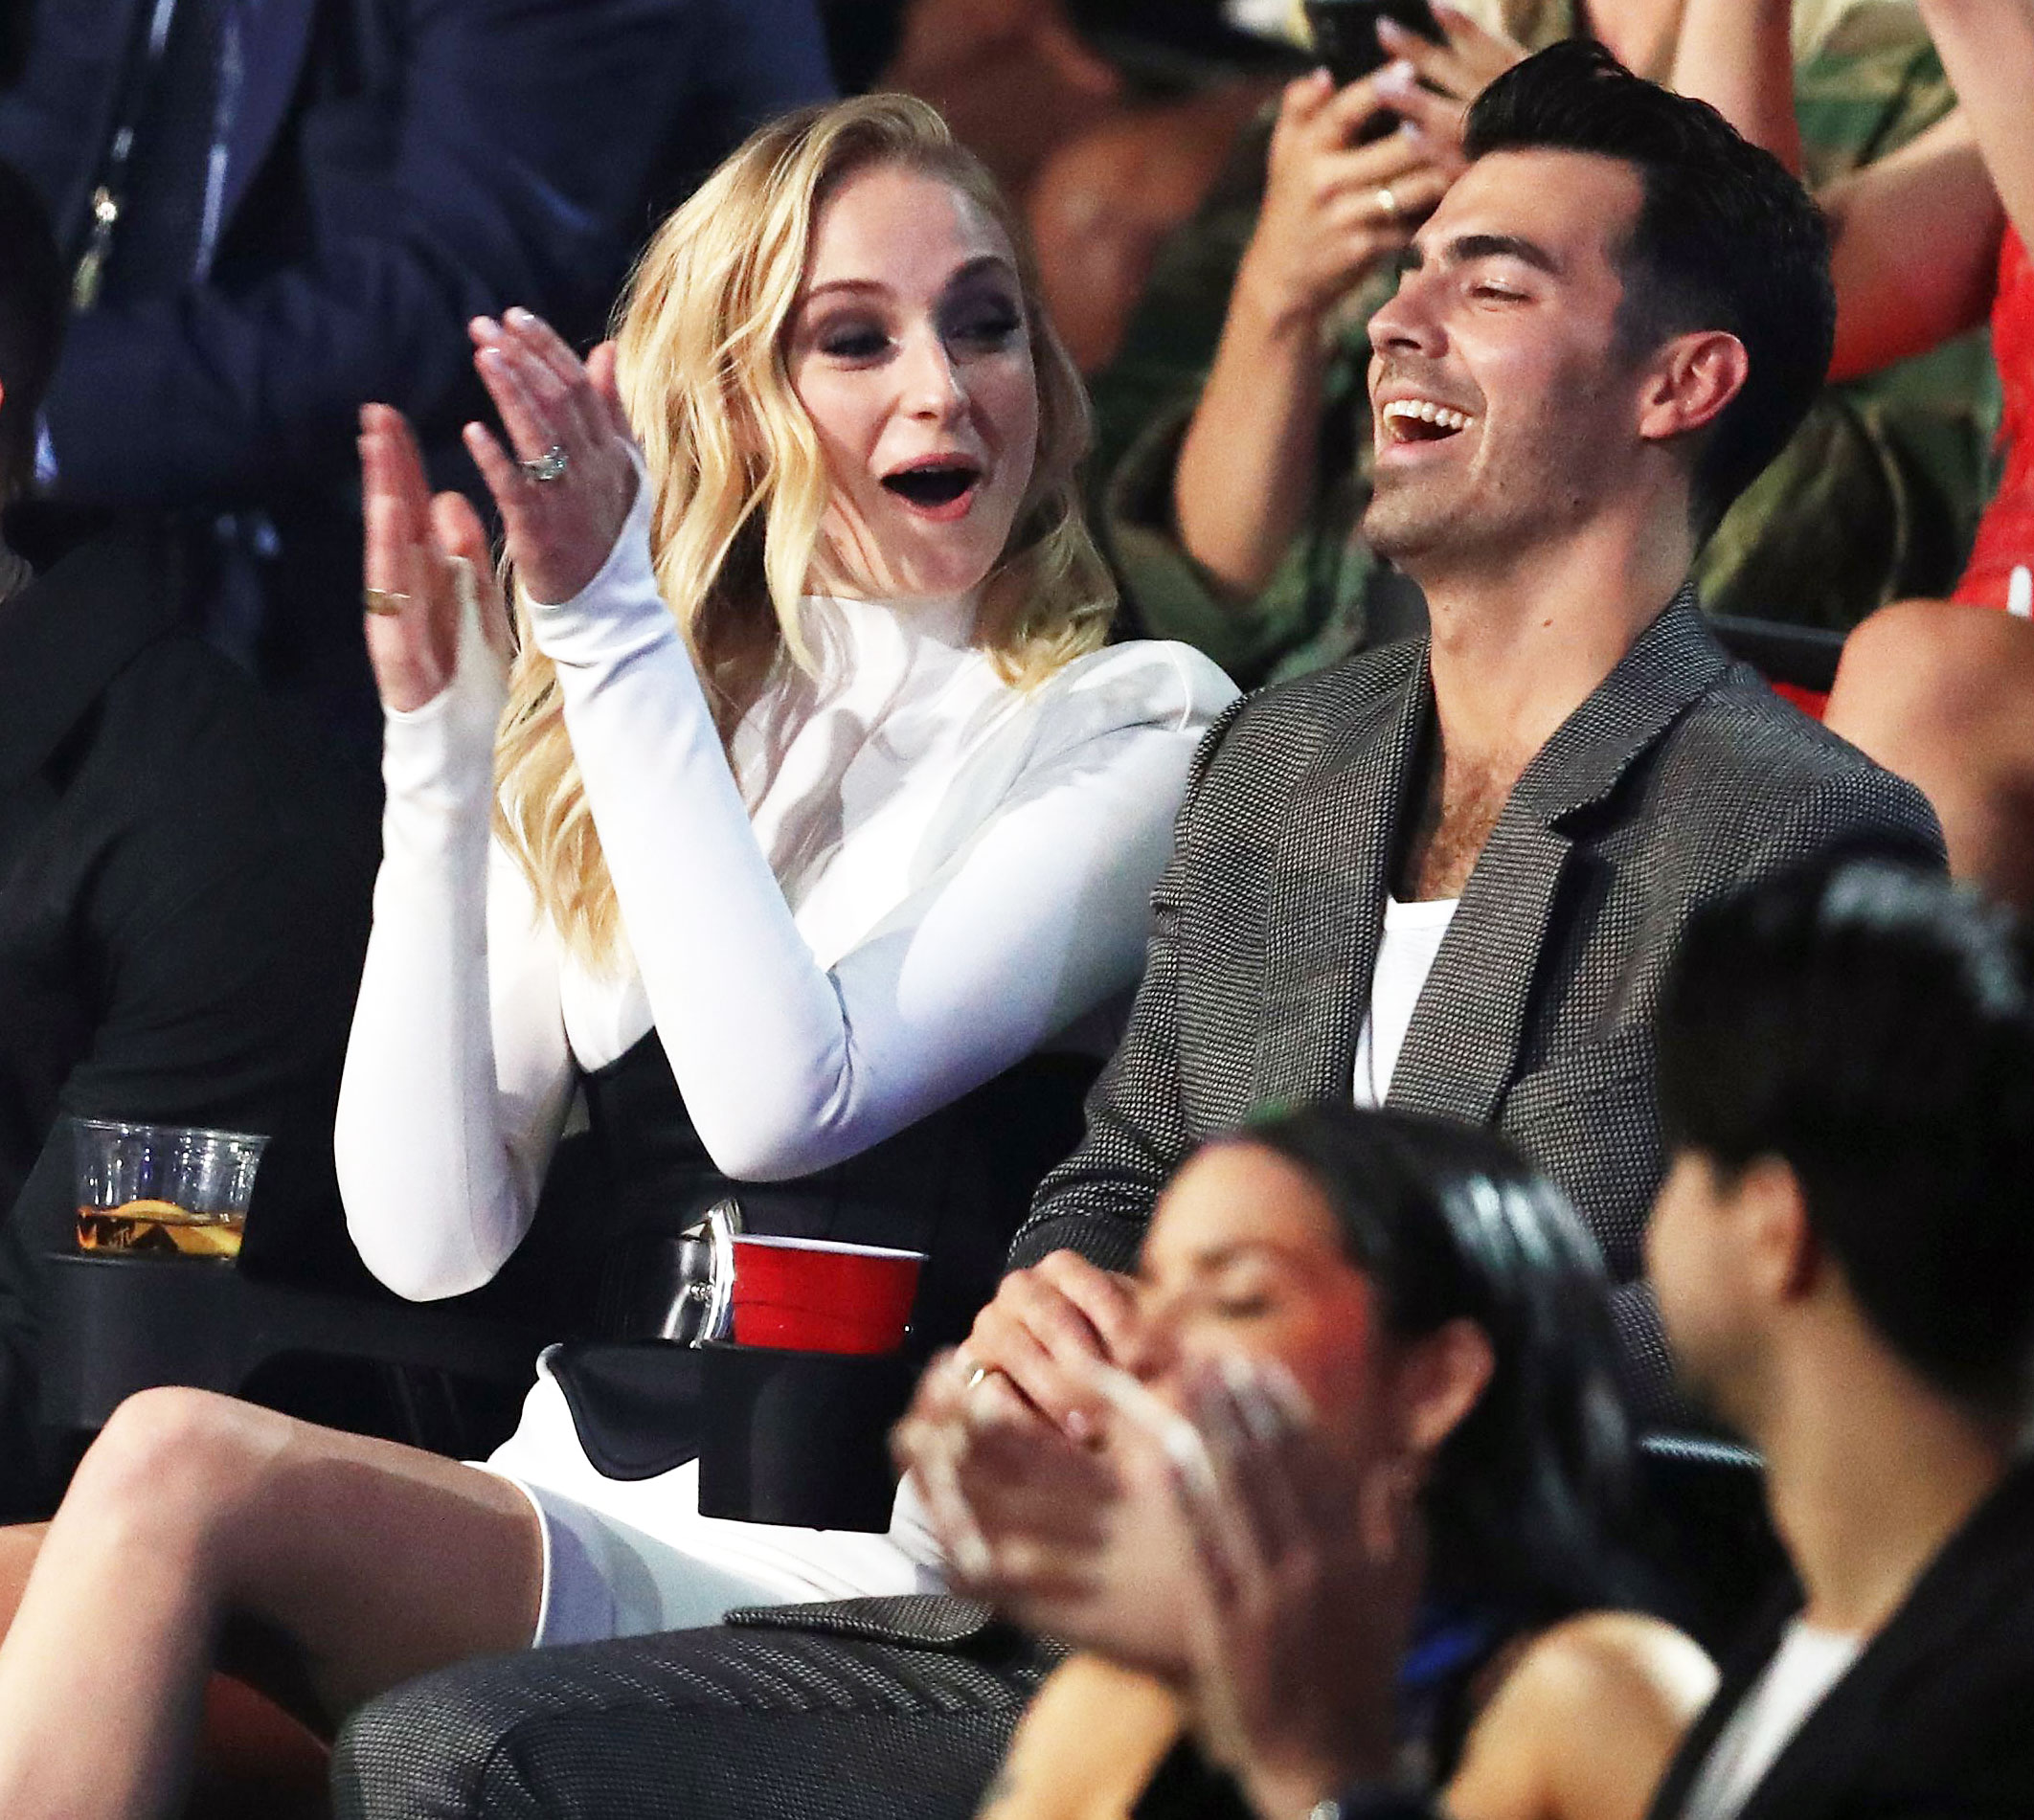 Joe Jonas and Sophie Turner Were Desperately Waiting for Shawn Mendes and Camila Cabello to Kiss During VMAs 2019 Performance